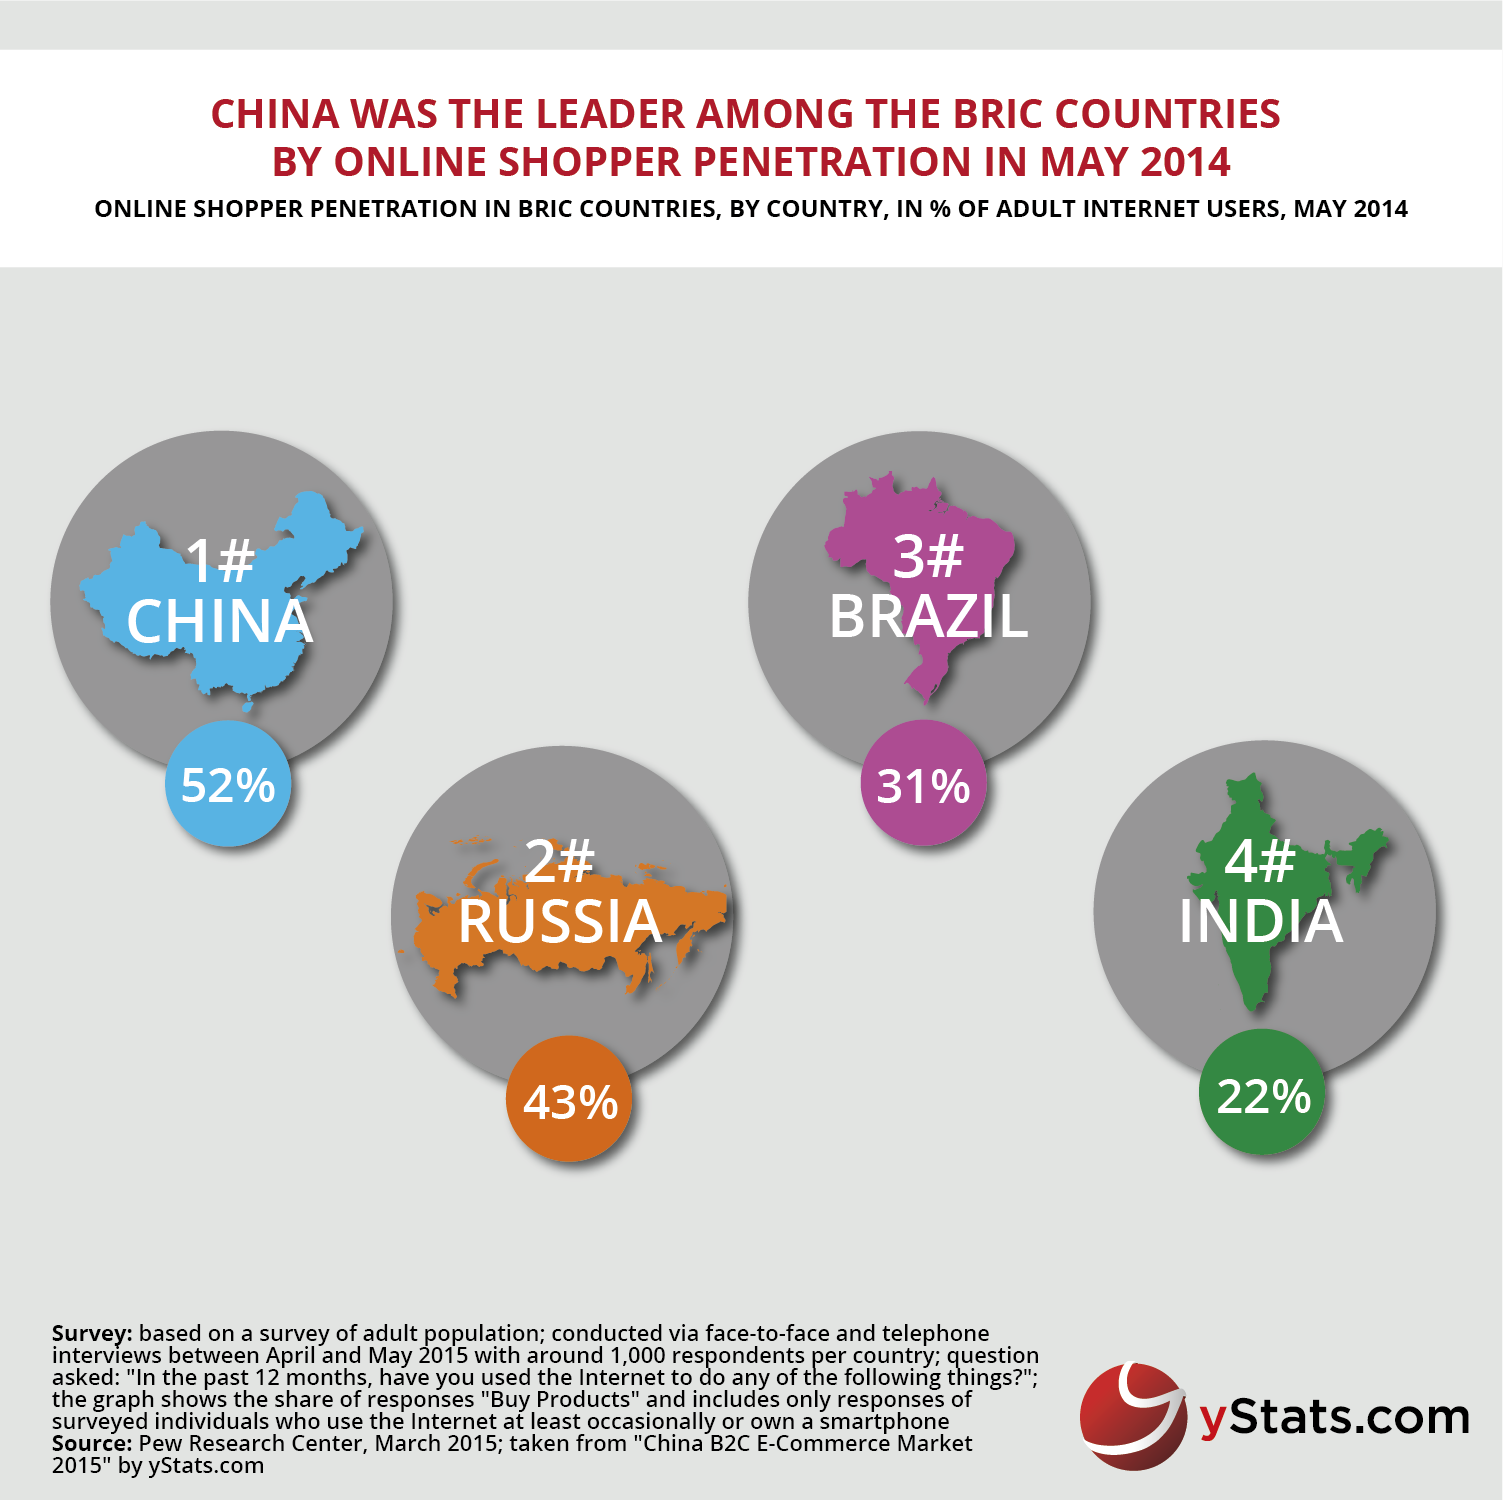 Infographic: China was the leader among the BRIC countries by Online Shopper Penetration in May 2014